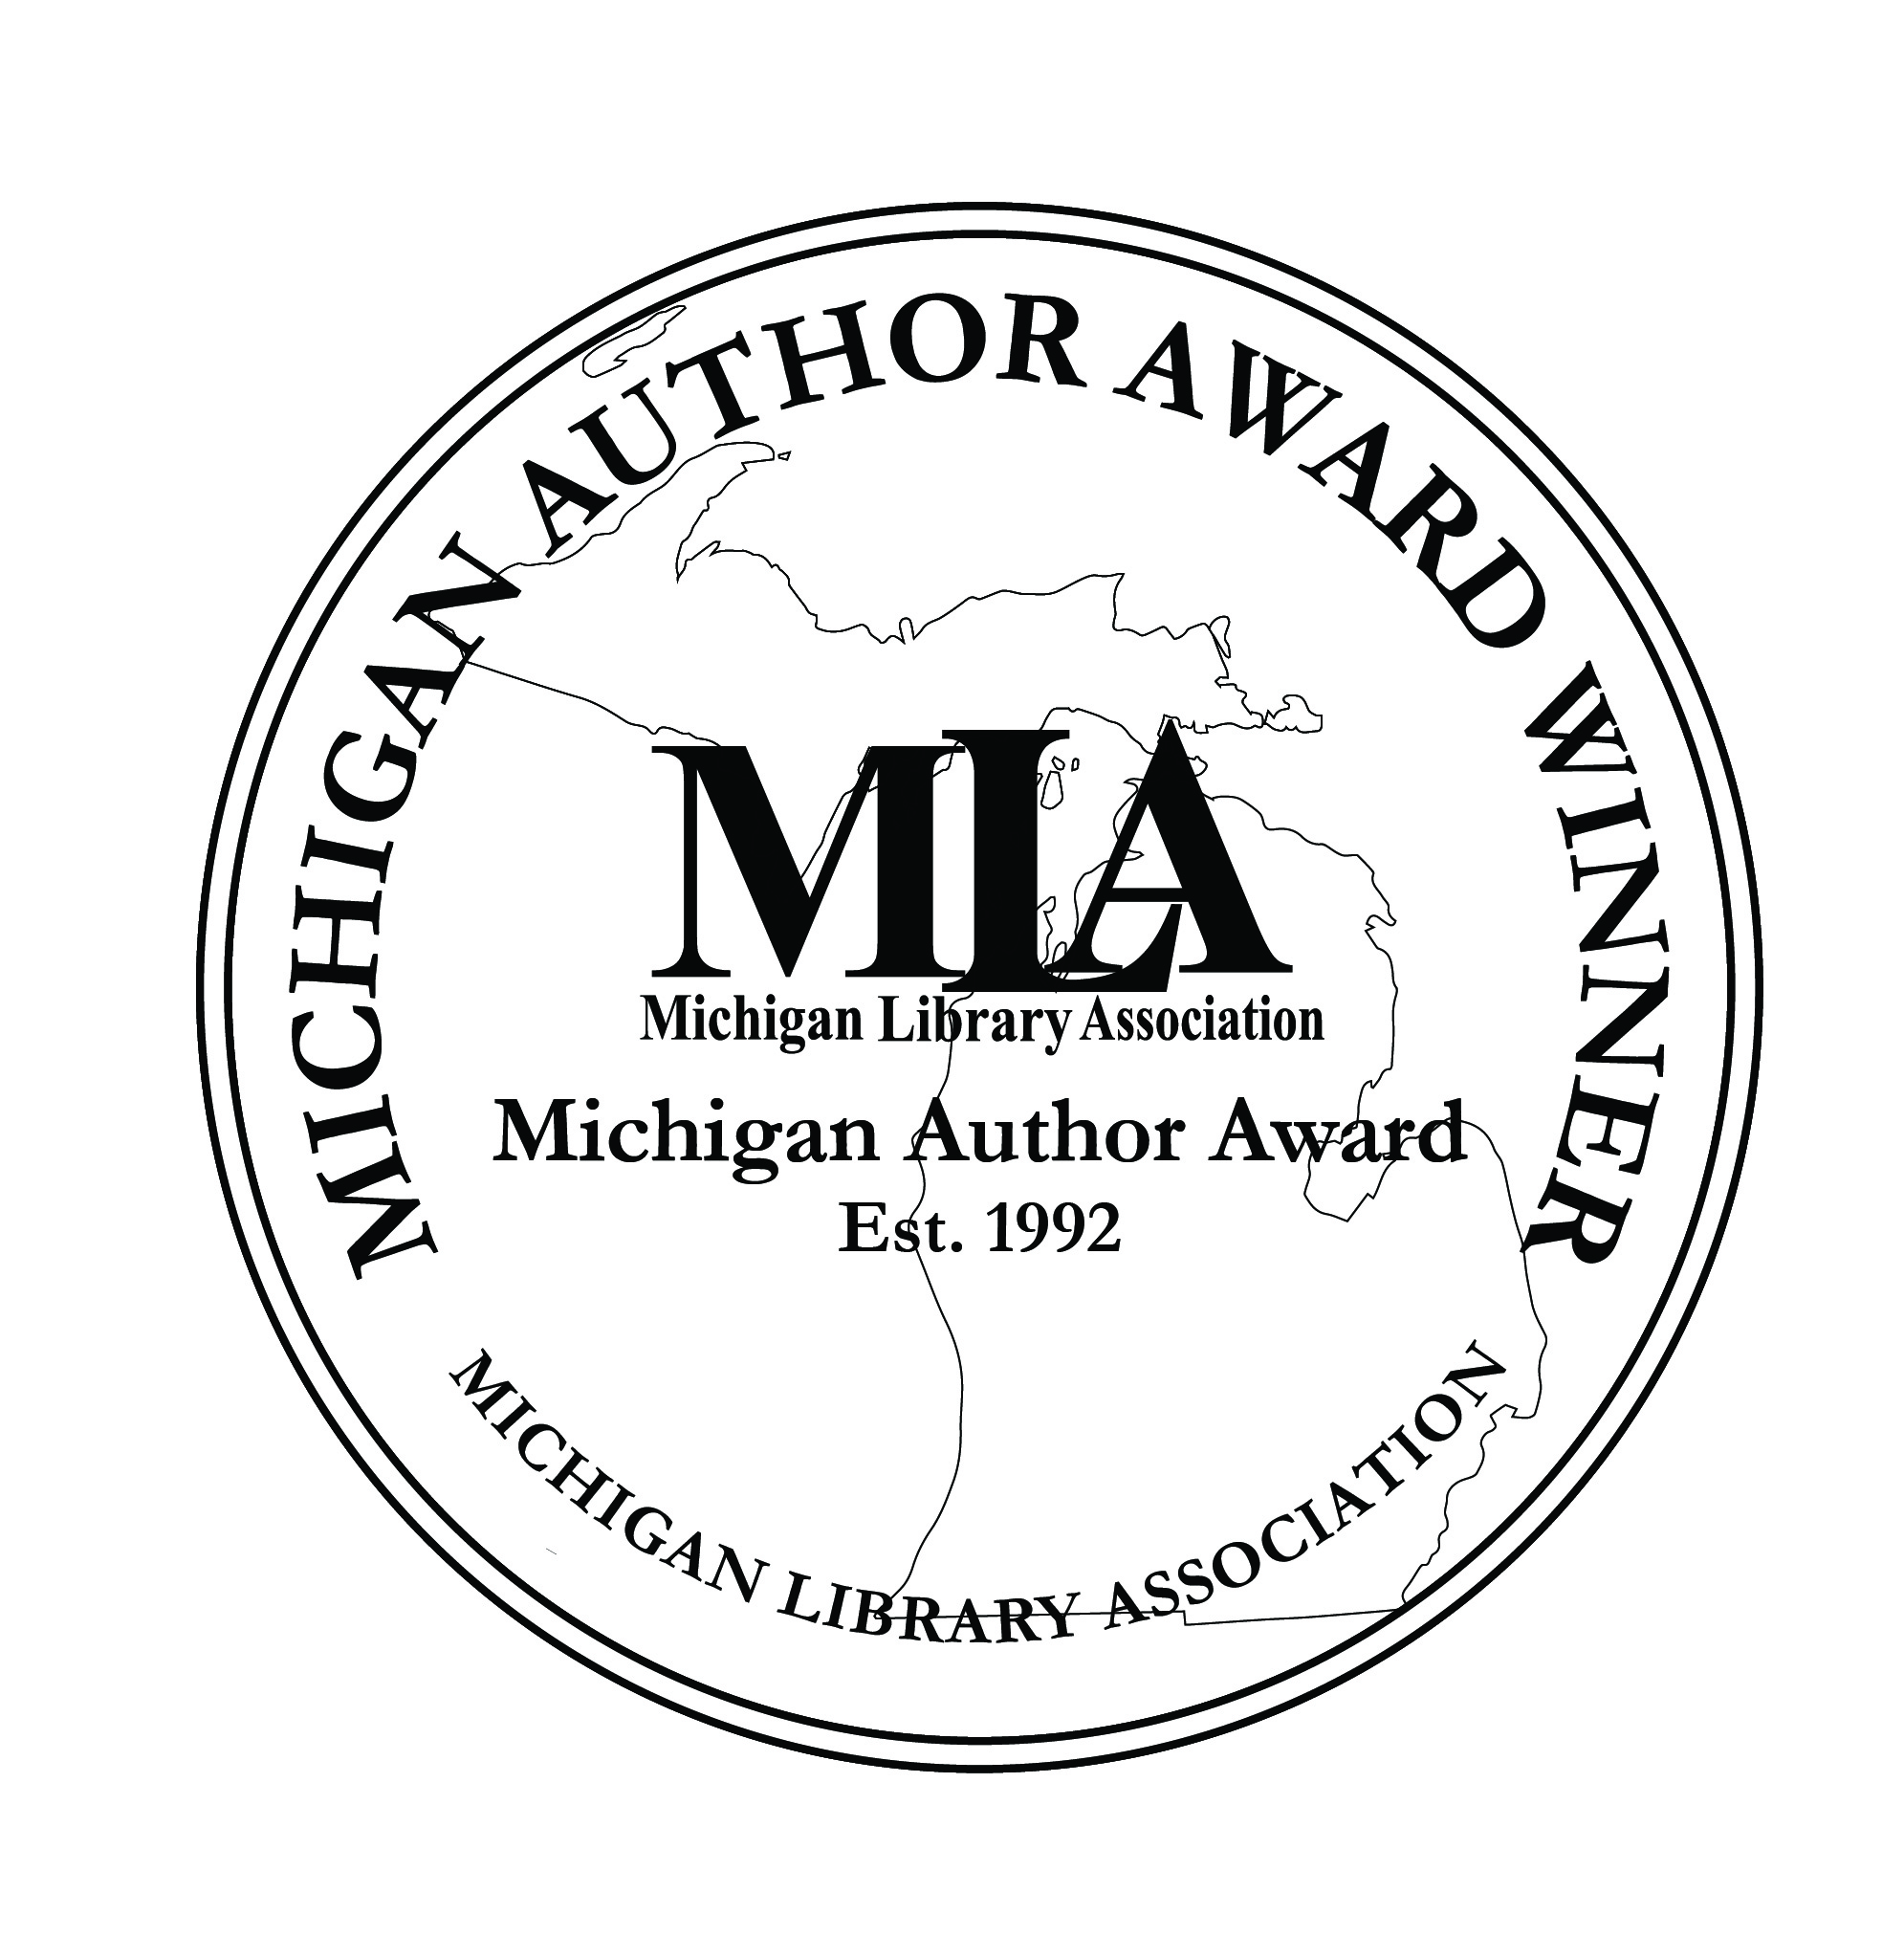 Michigan Author Award